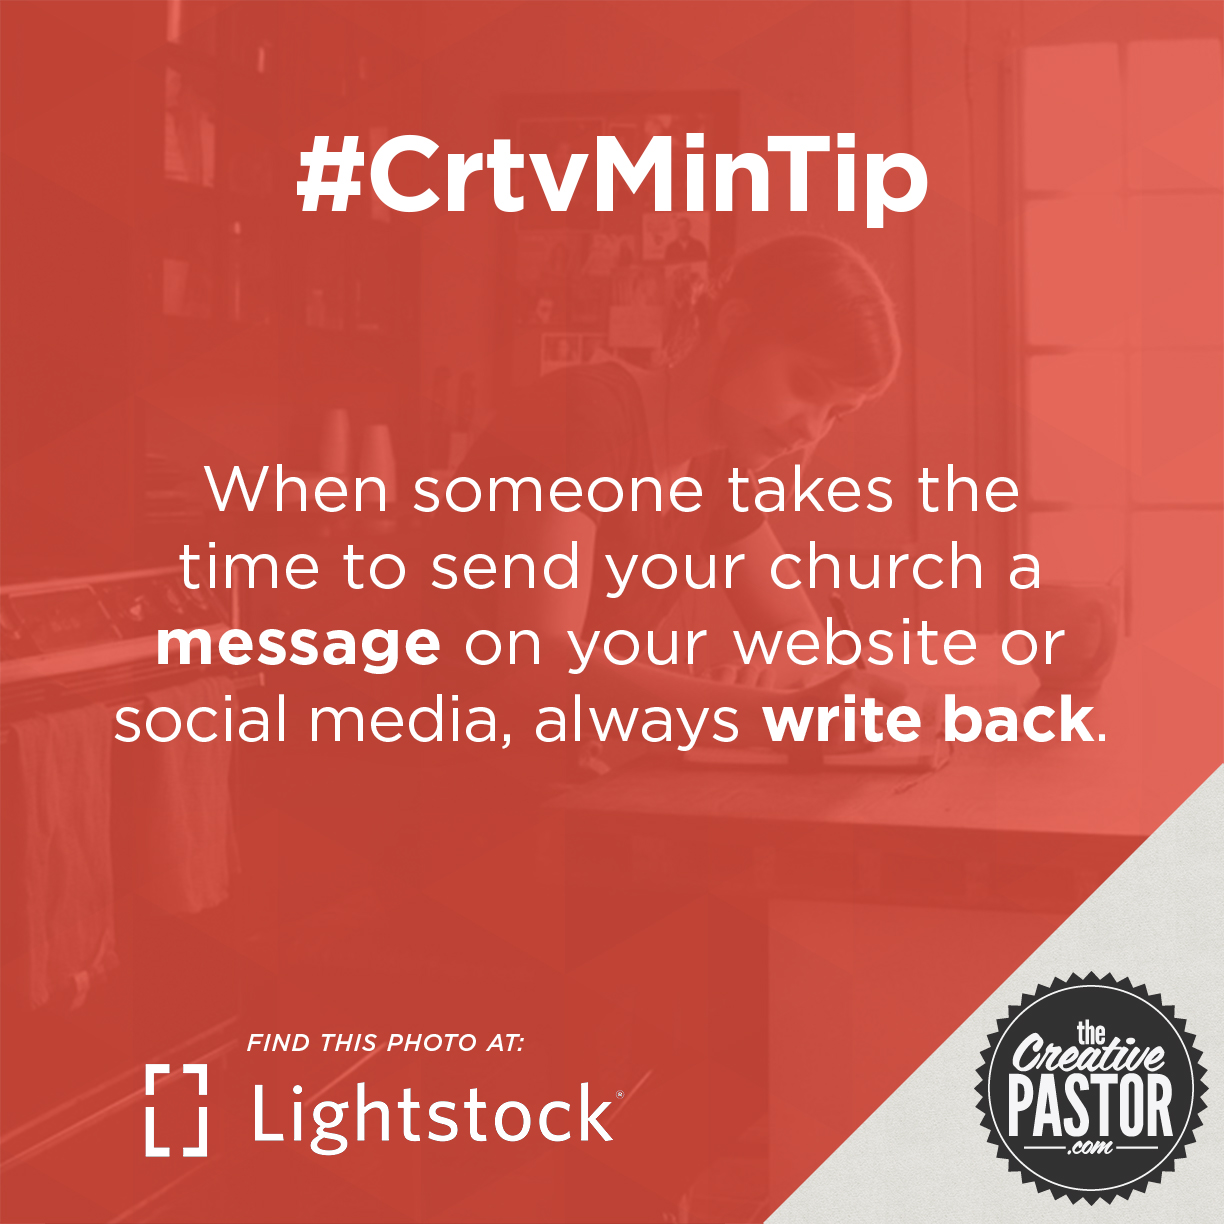 When someone takes the time to send your church a message on your website or social media, always write back.